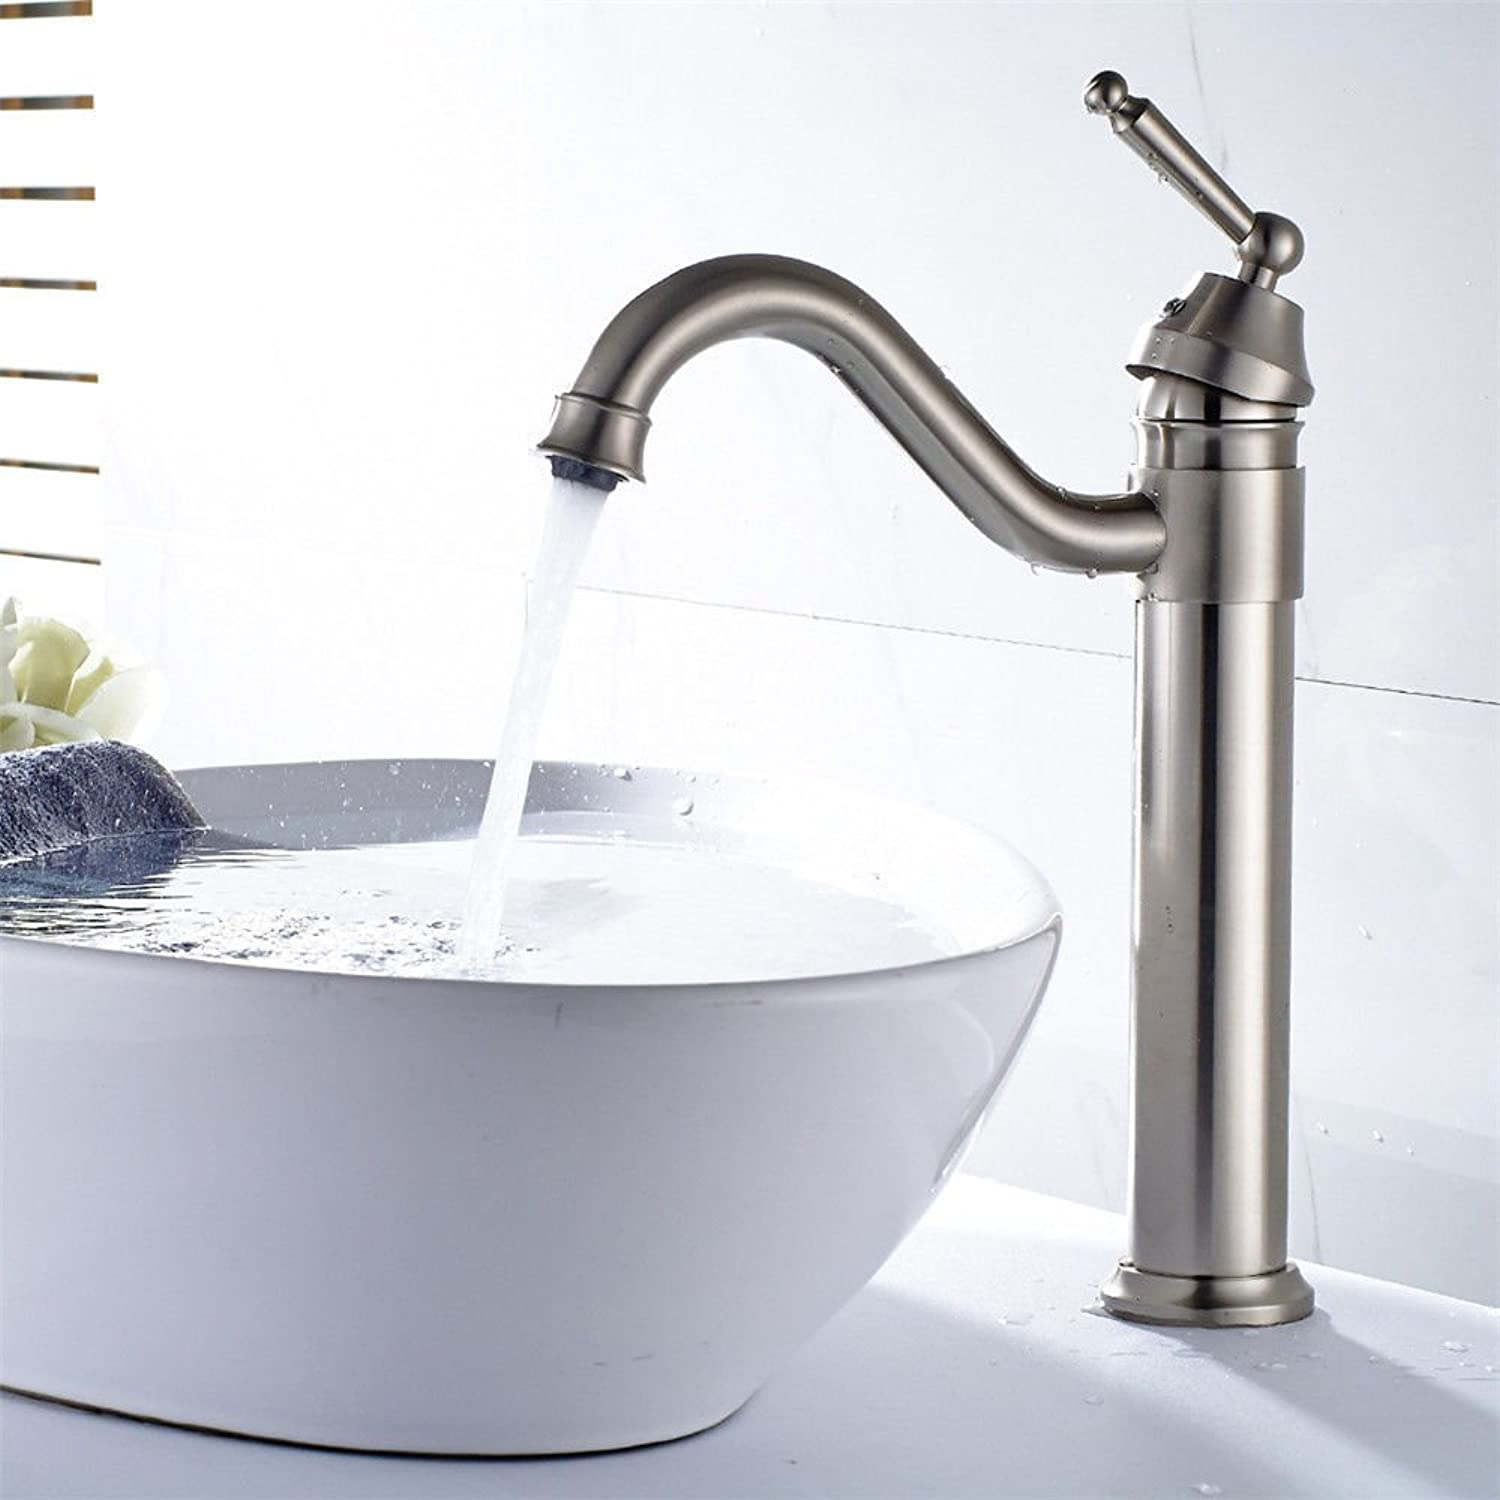 ETERNAL QUALITY Bathroom Sink Basin Tap Brass Mixer Tap Washroom Mixer Faucet The copper-nickel brushed bathroom basin faucet elbow out of the water to redate the surface